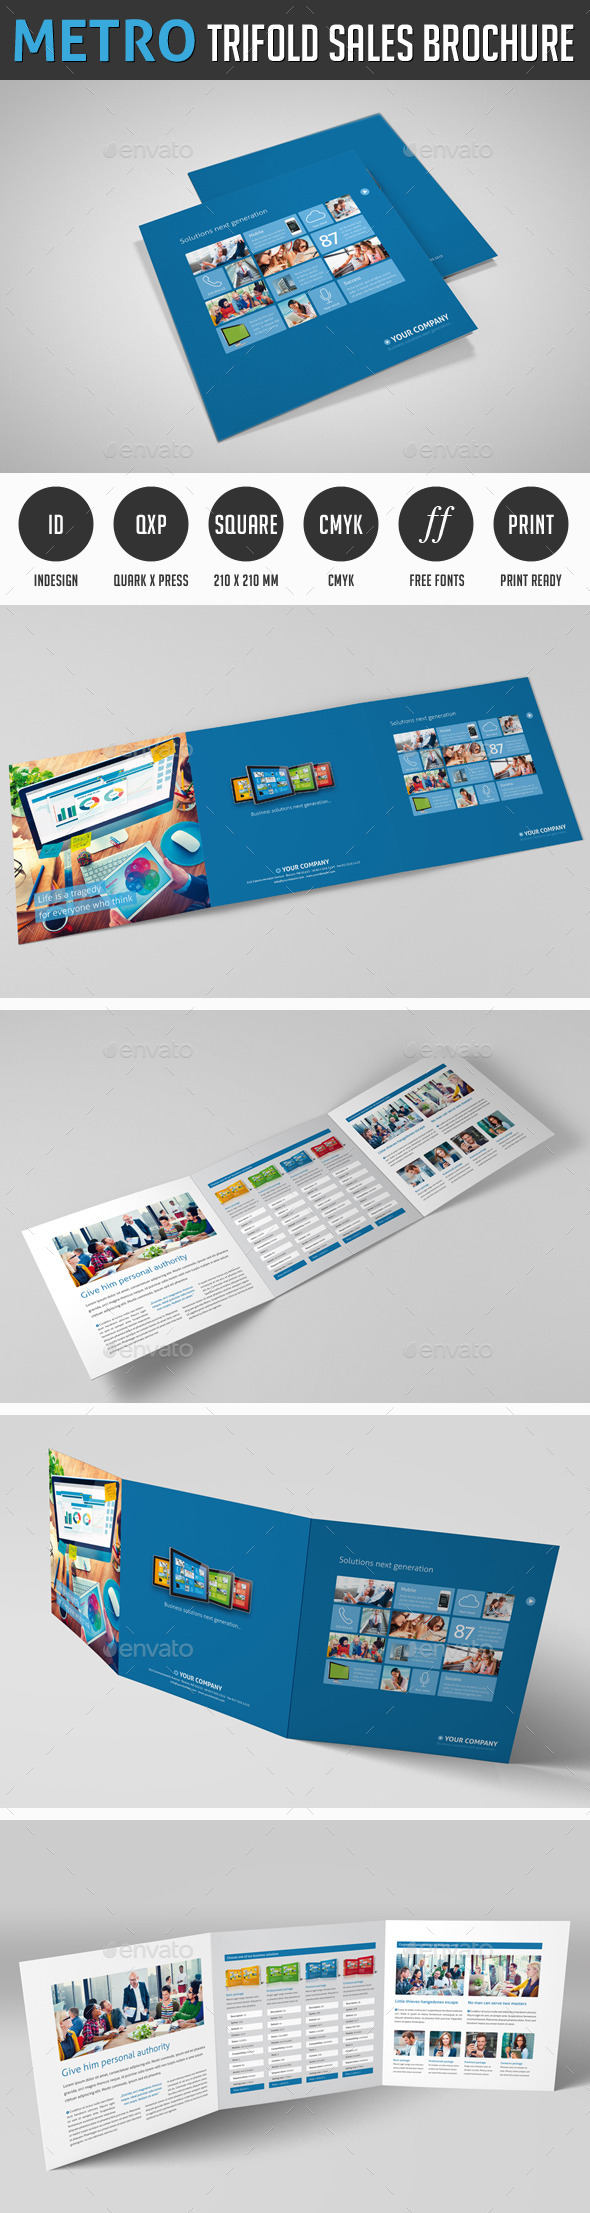 Metro Tri-fold Sales Brochure - Corporate Brochures